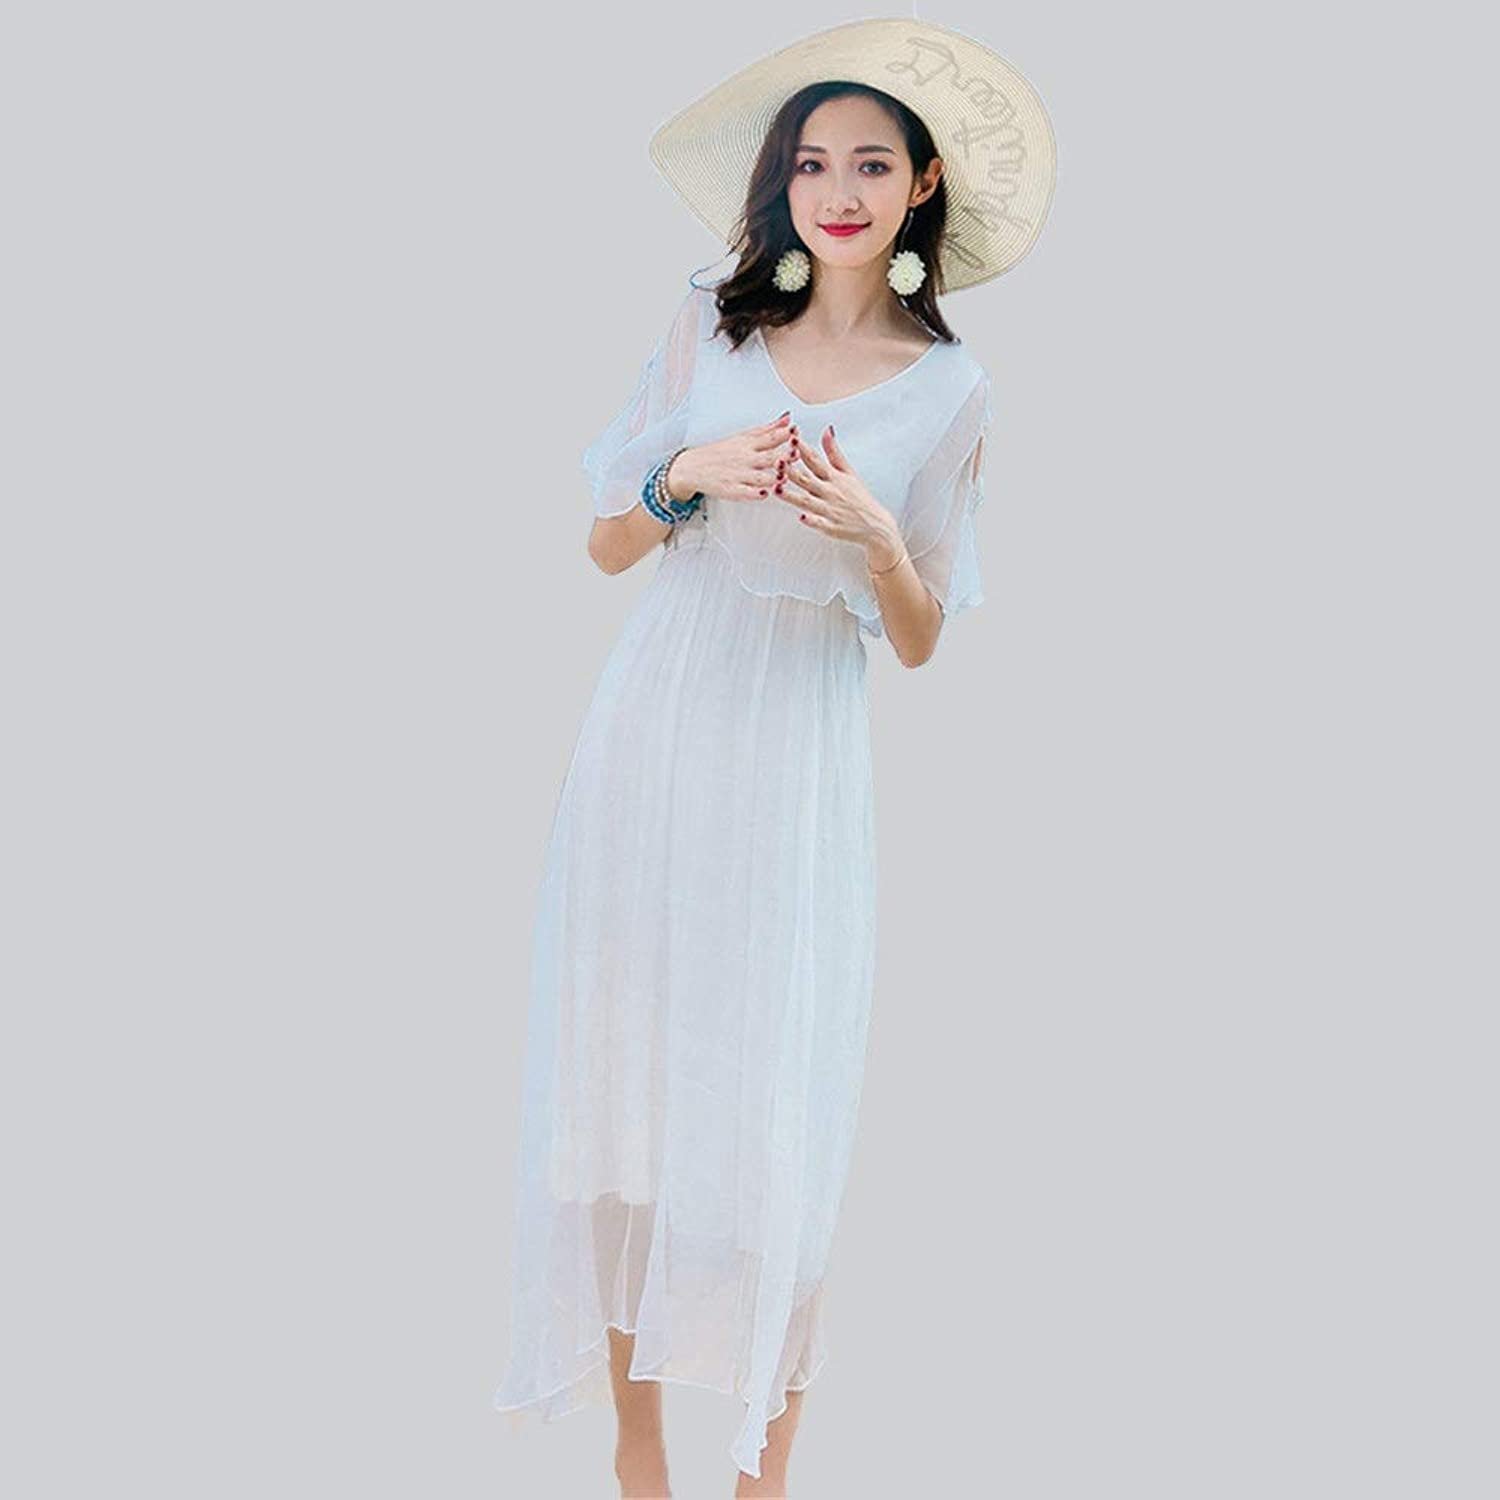 Beach Dress Women Bohemian Beach Dress V Neck Boho Flowy Swing Long Maxi Dress Beachwear Dress Suitable for Outdoor Beach Walks (color   White, Size   S)